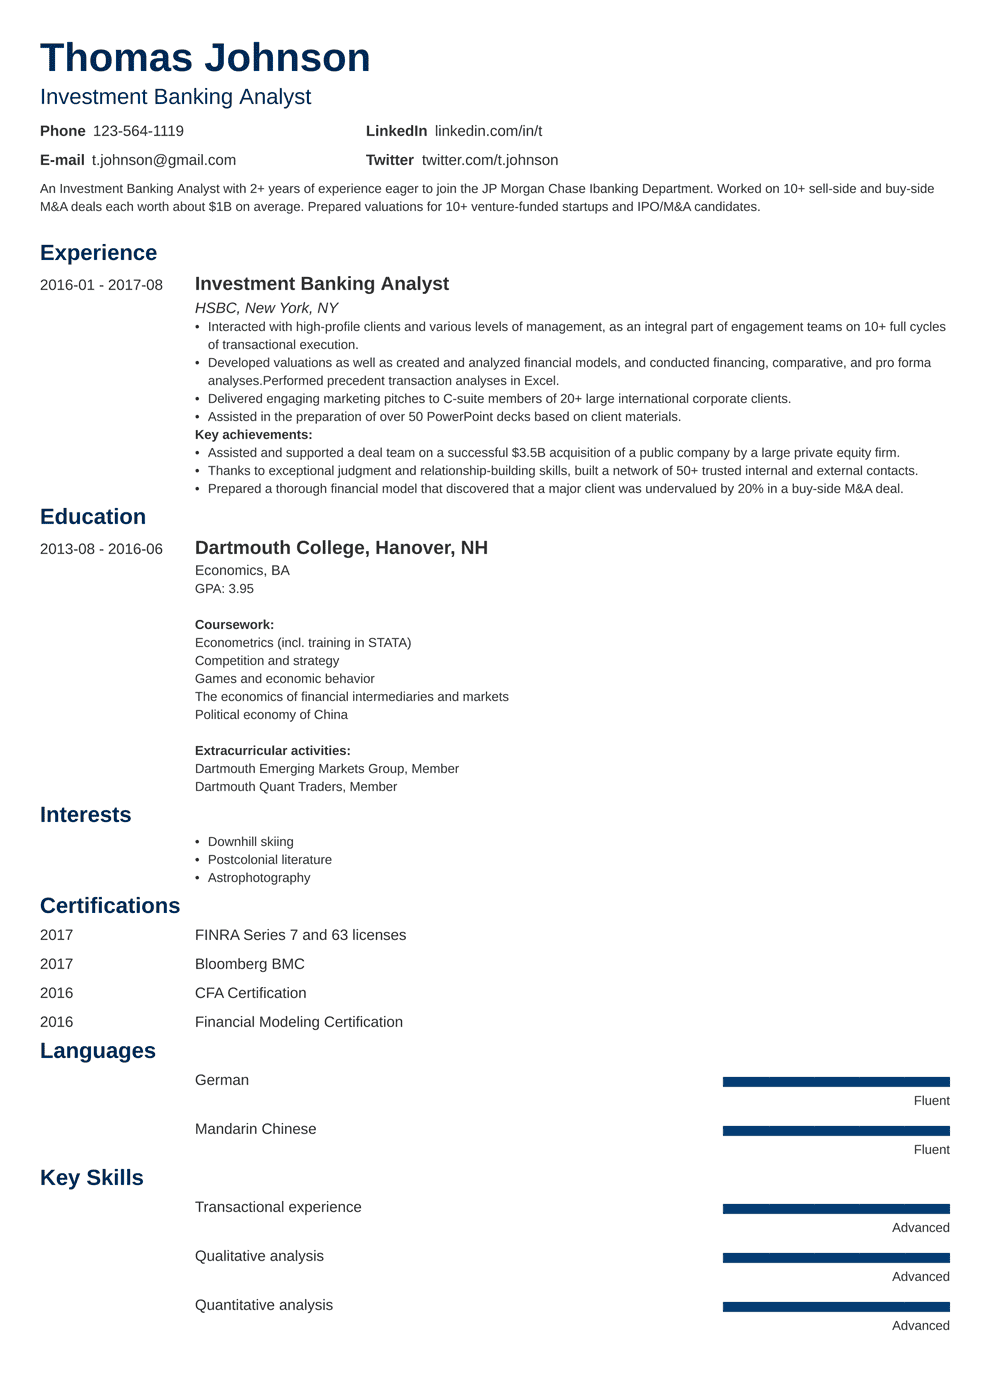 Investment Banking Resume Template & Guide [20 Examples]